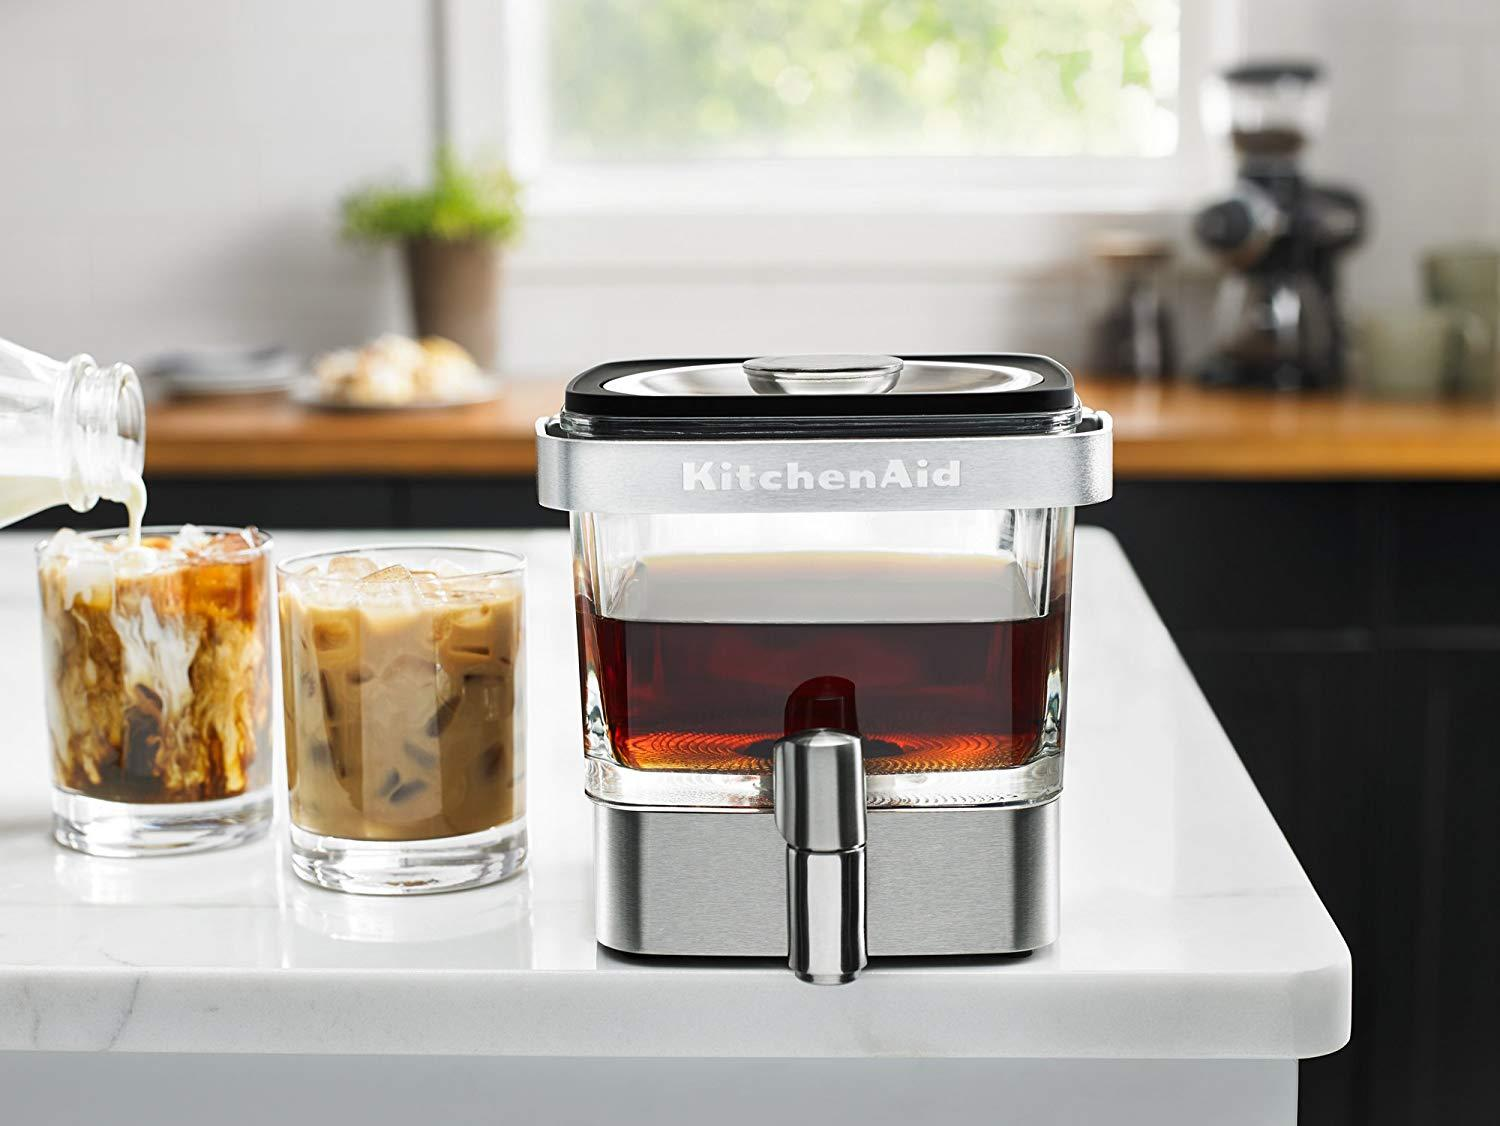 KitchenAid deal: Save $30 on cold-brew coffee maker on Amazon